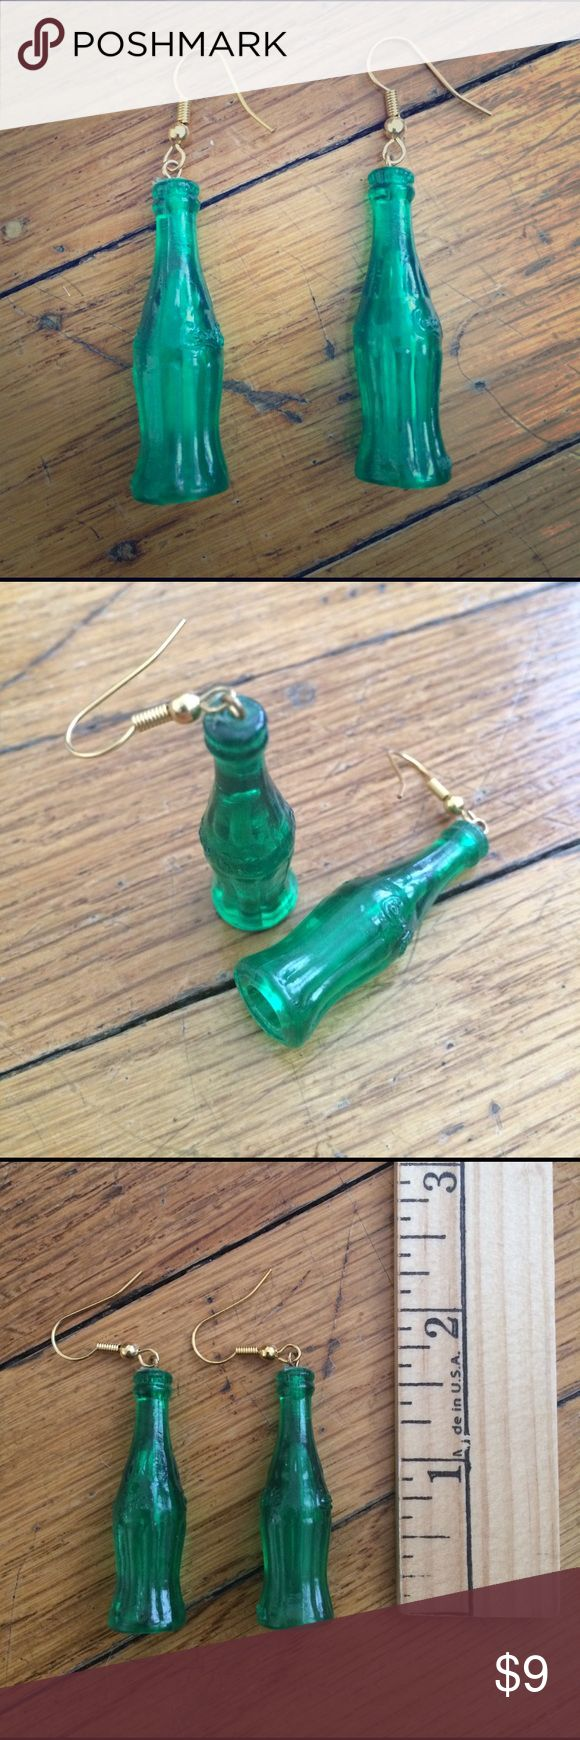 Plastic green Coke bottle earrings Drink in these cute Coca Cola bottle earrings! Hard plastic green Coke bottles just over an inch & a half tall on gold hooks to hang about 2 1/2 inches from your earlobe. Had these since childhood & it's time for them to find a new home. Clean, vintage age but basically look like new. Top-rated seller, ships daily! Questions & reasonable offers welcome. Happy poshing! ✨ Vintage Jewelry Earrings